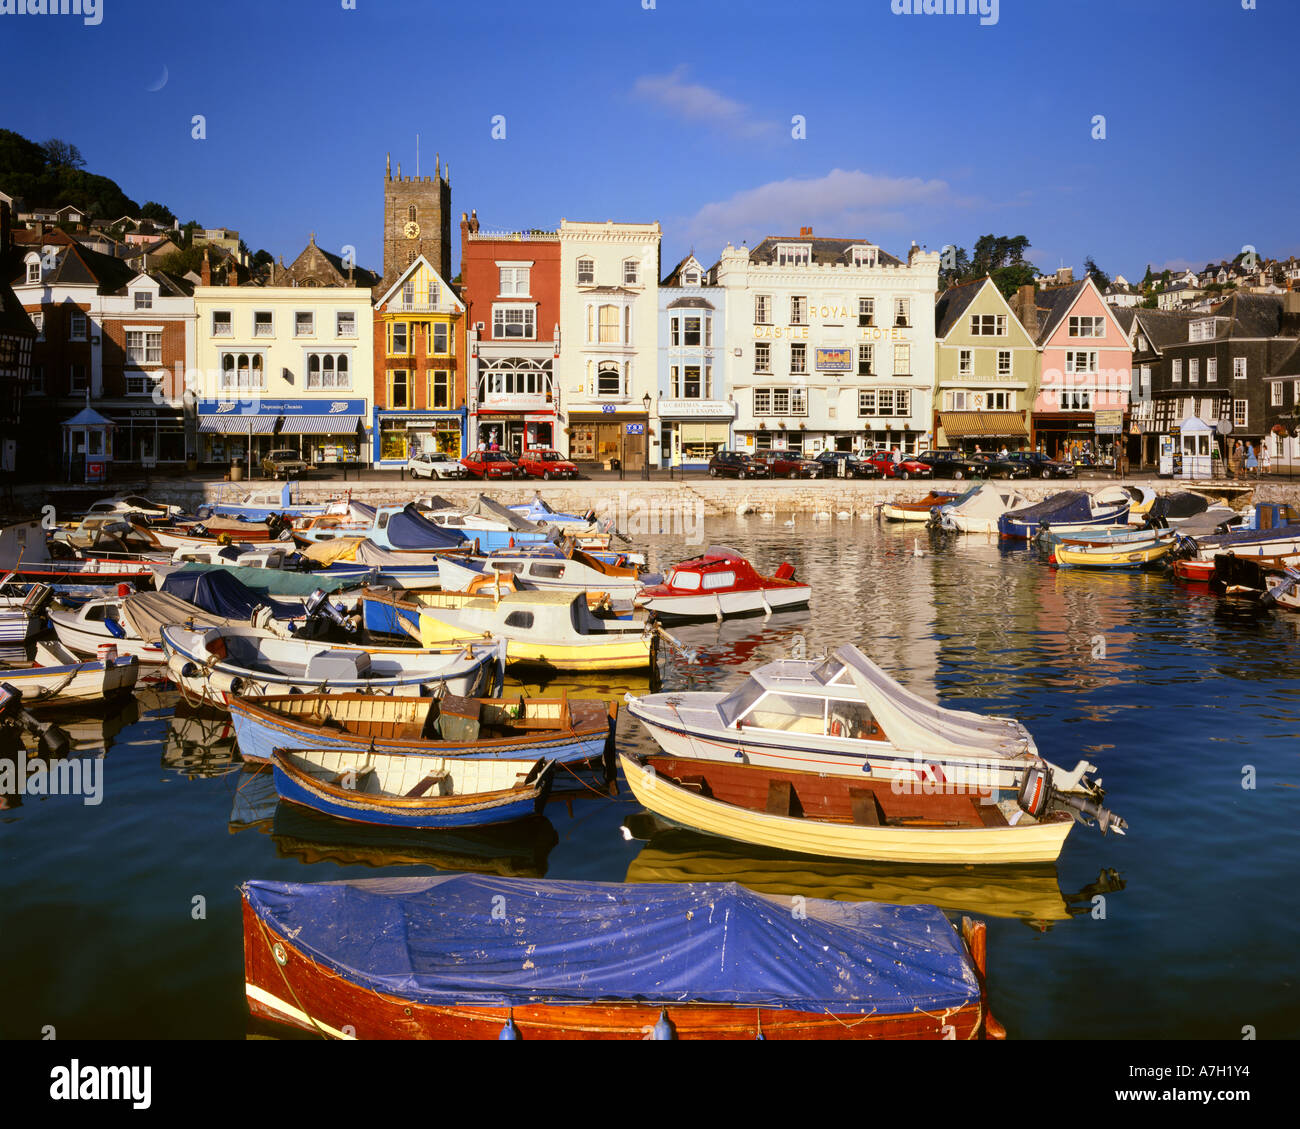 GB - DEVON: The Inner Harbour at Dartmouth - Stock Image